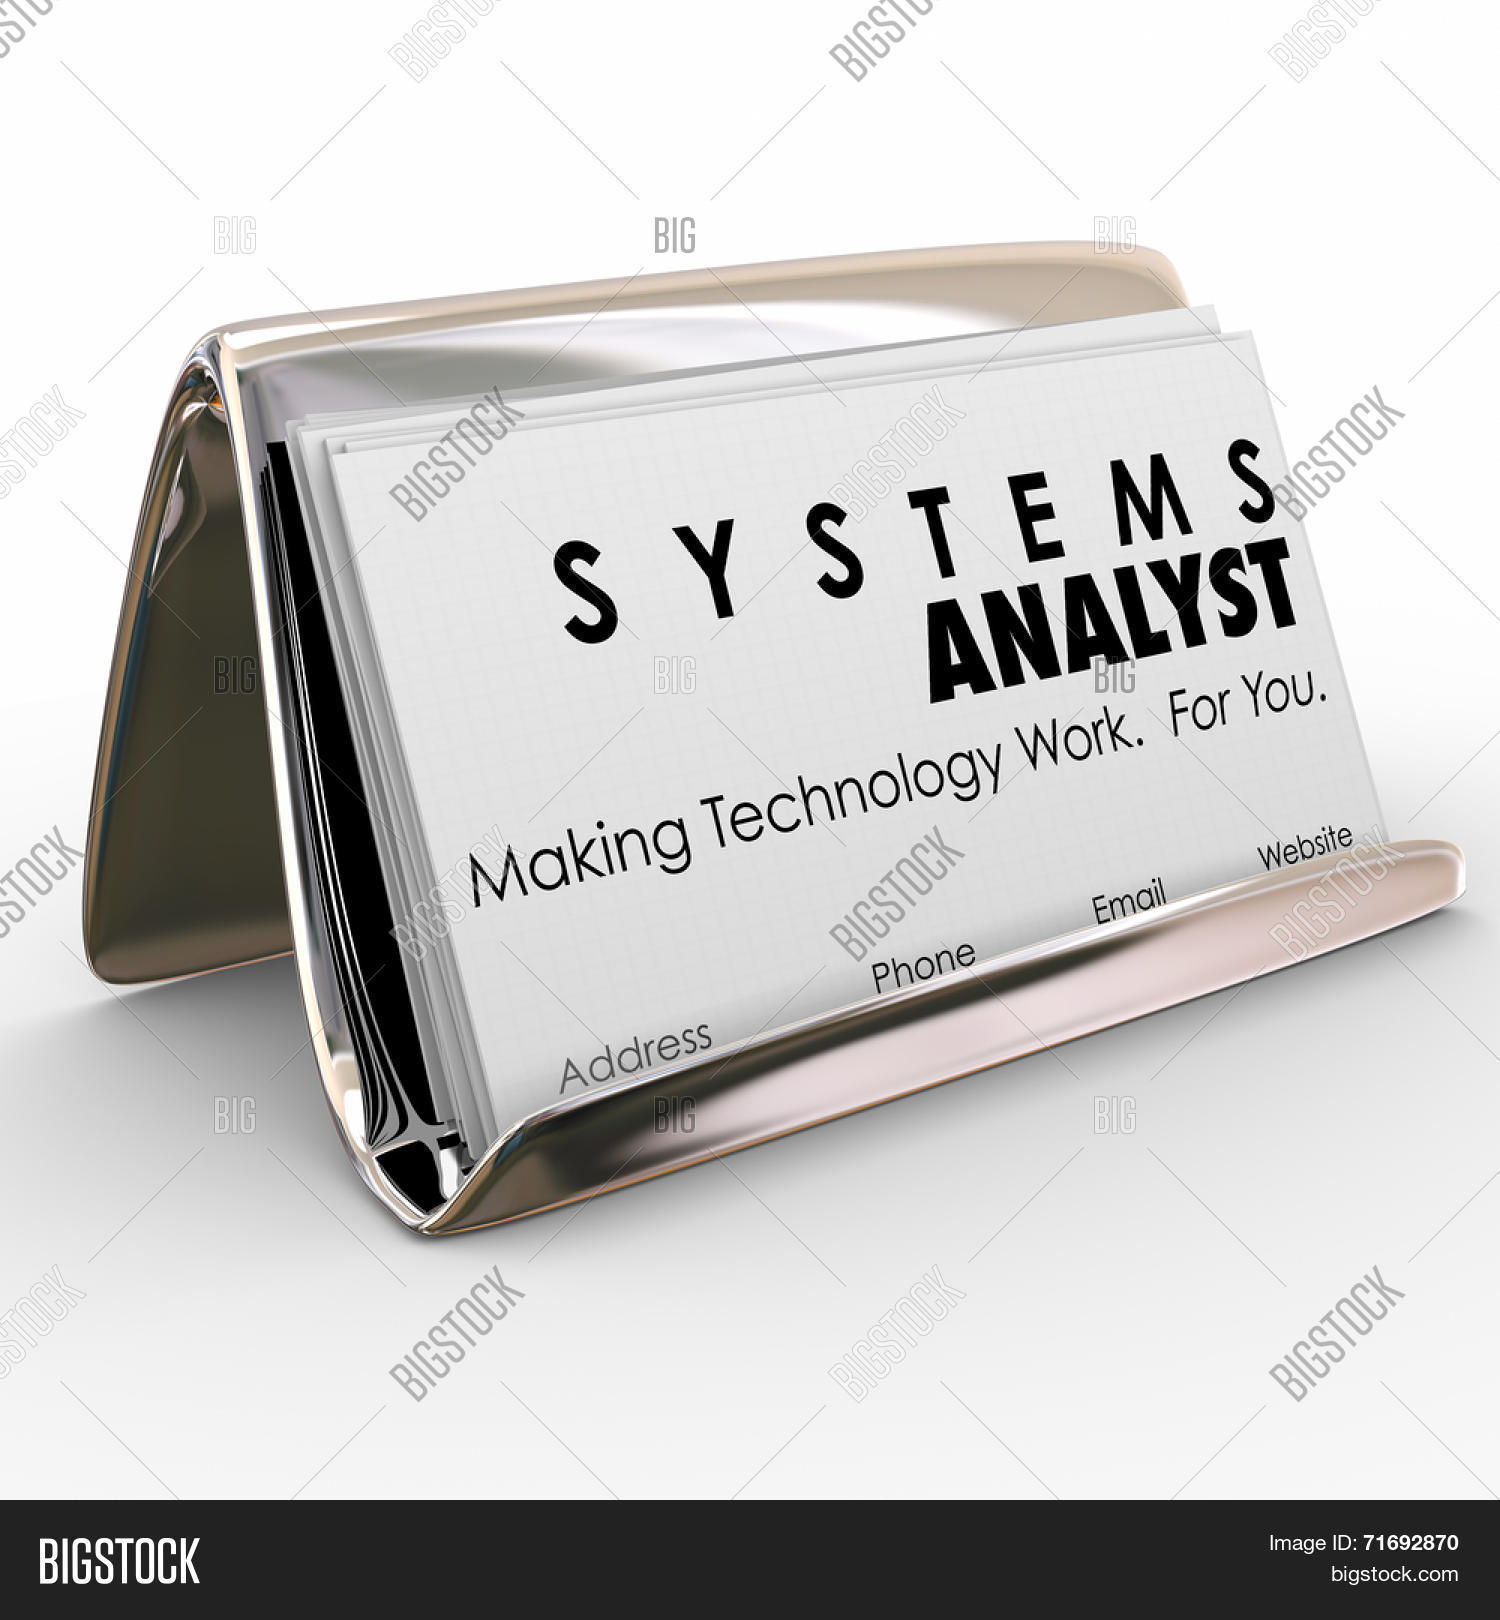 Systems analyst words on business image photo bigstock systems analyst words on business cards in a card holder and slogan making technology work for magicingreecefo Images